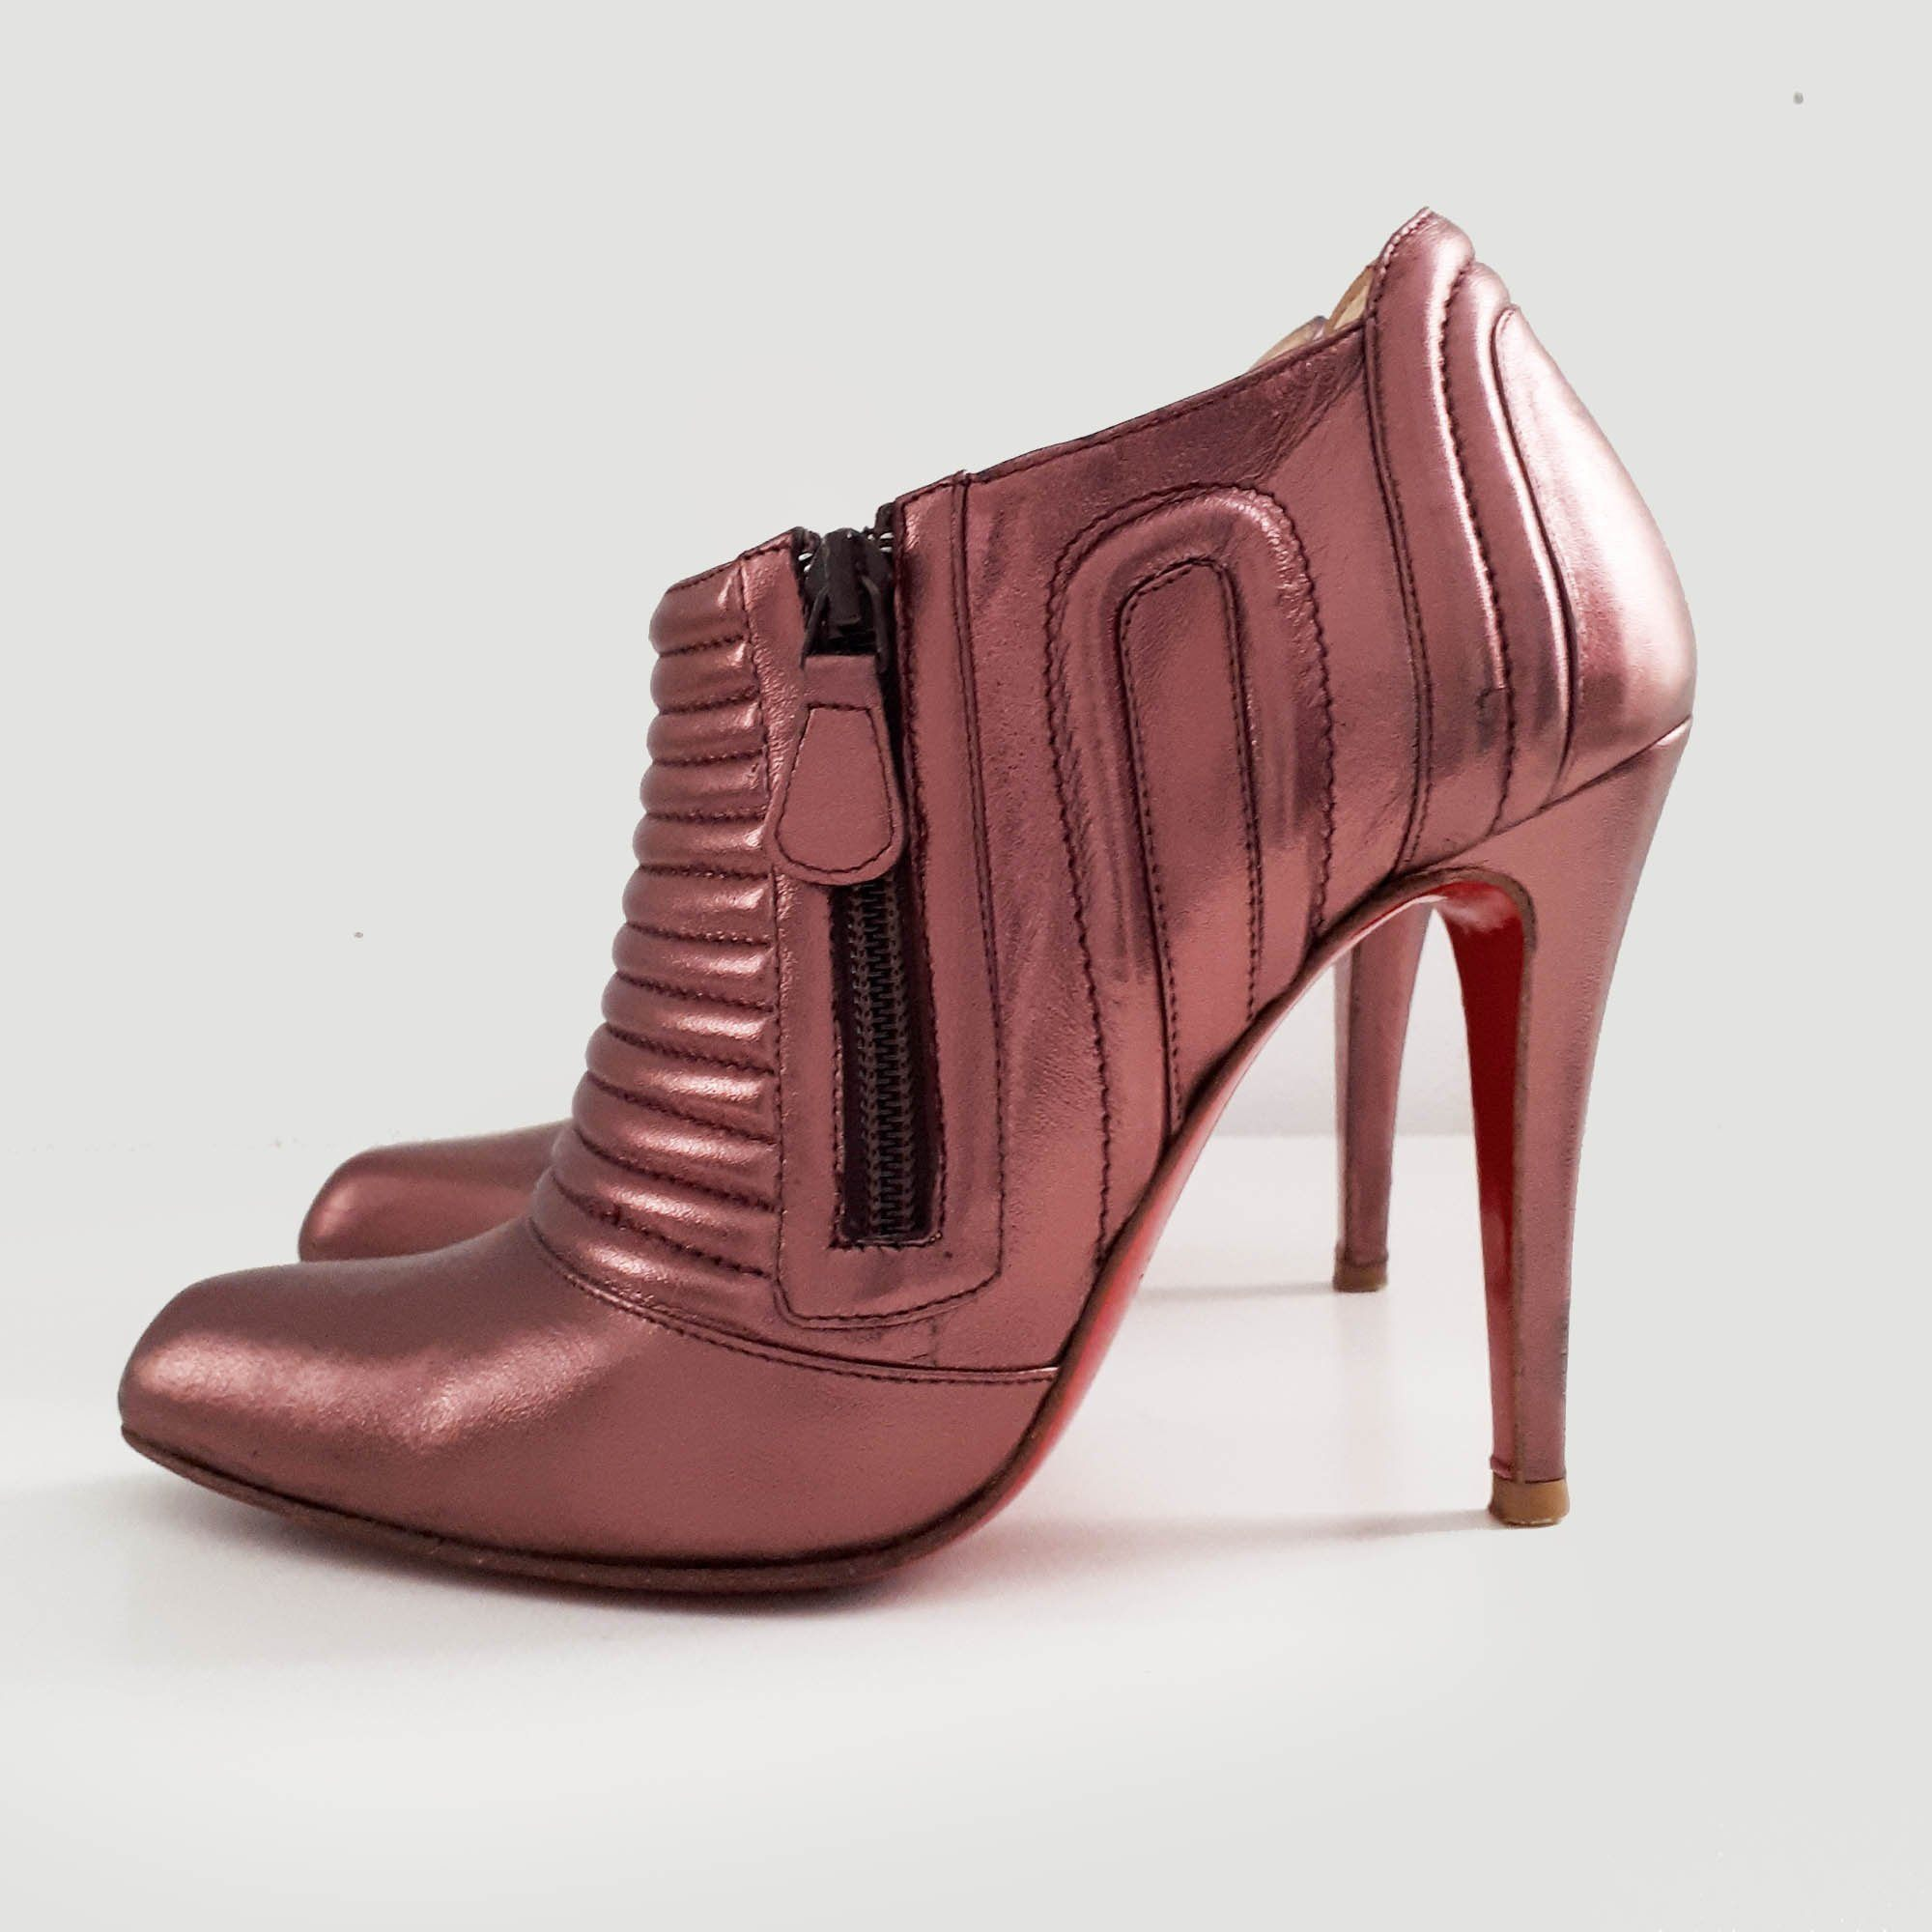 Christian Louboutin Sigourney Metallic Ankle Bootie Purple